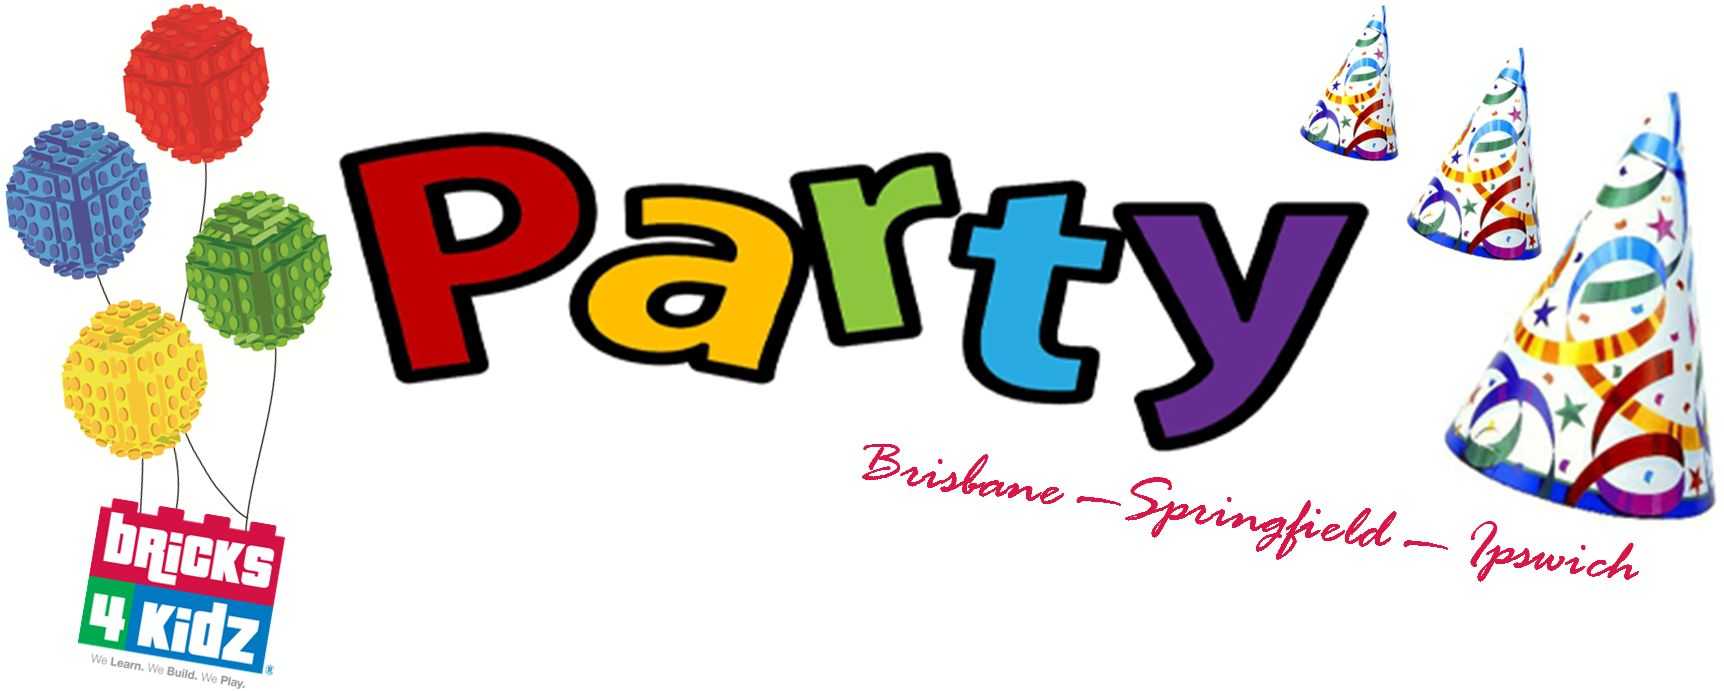 Party LEGO Brisbane Springfield Ipswich